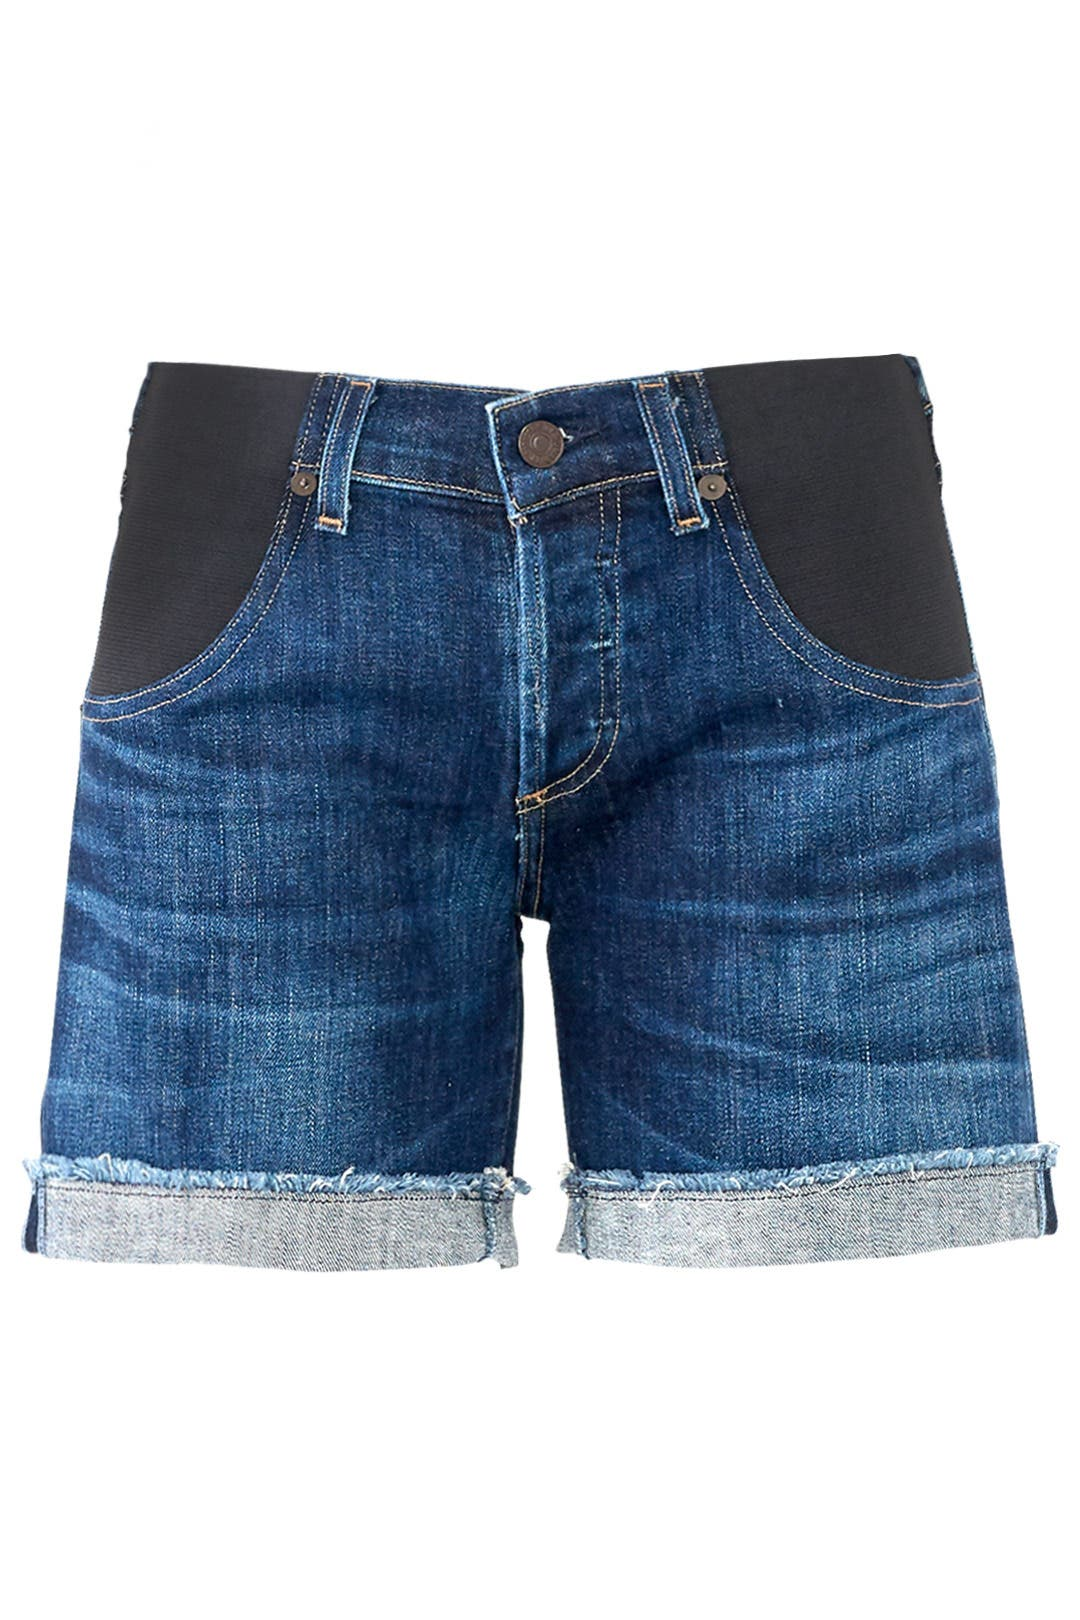 4cd2ec7164 Skyler Maternity Jean Shorts by Citizens Of Humanity for $35 | Rent ...